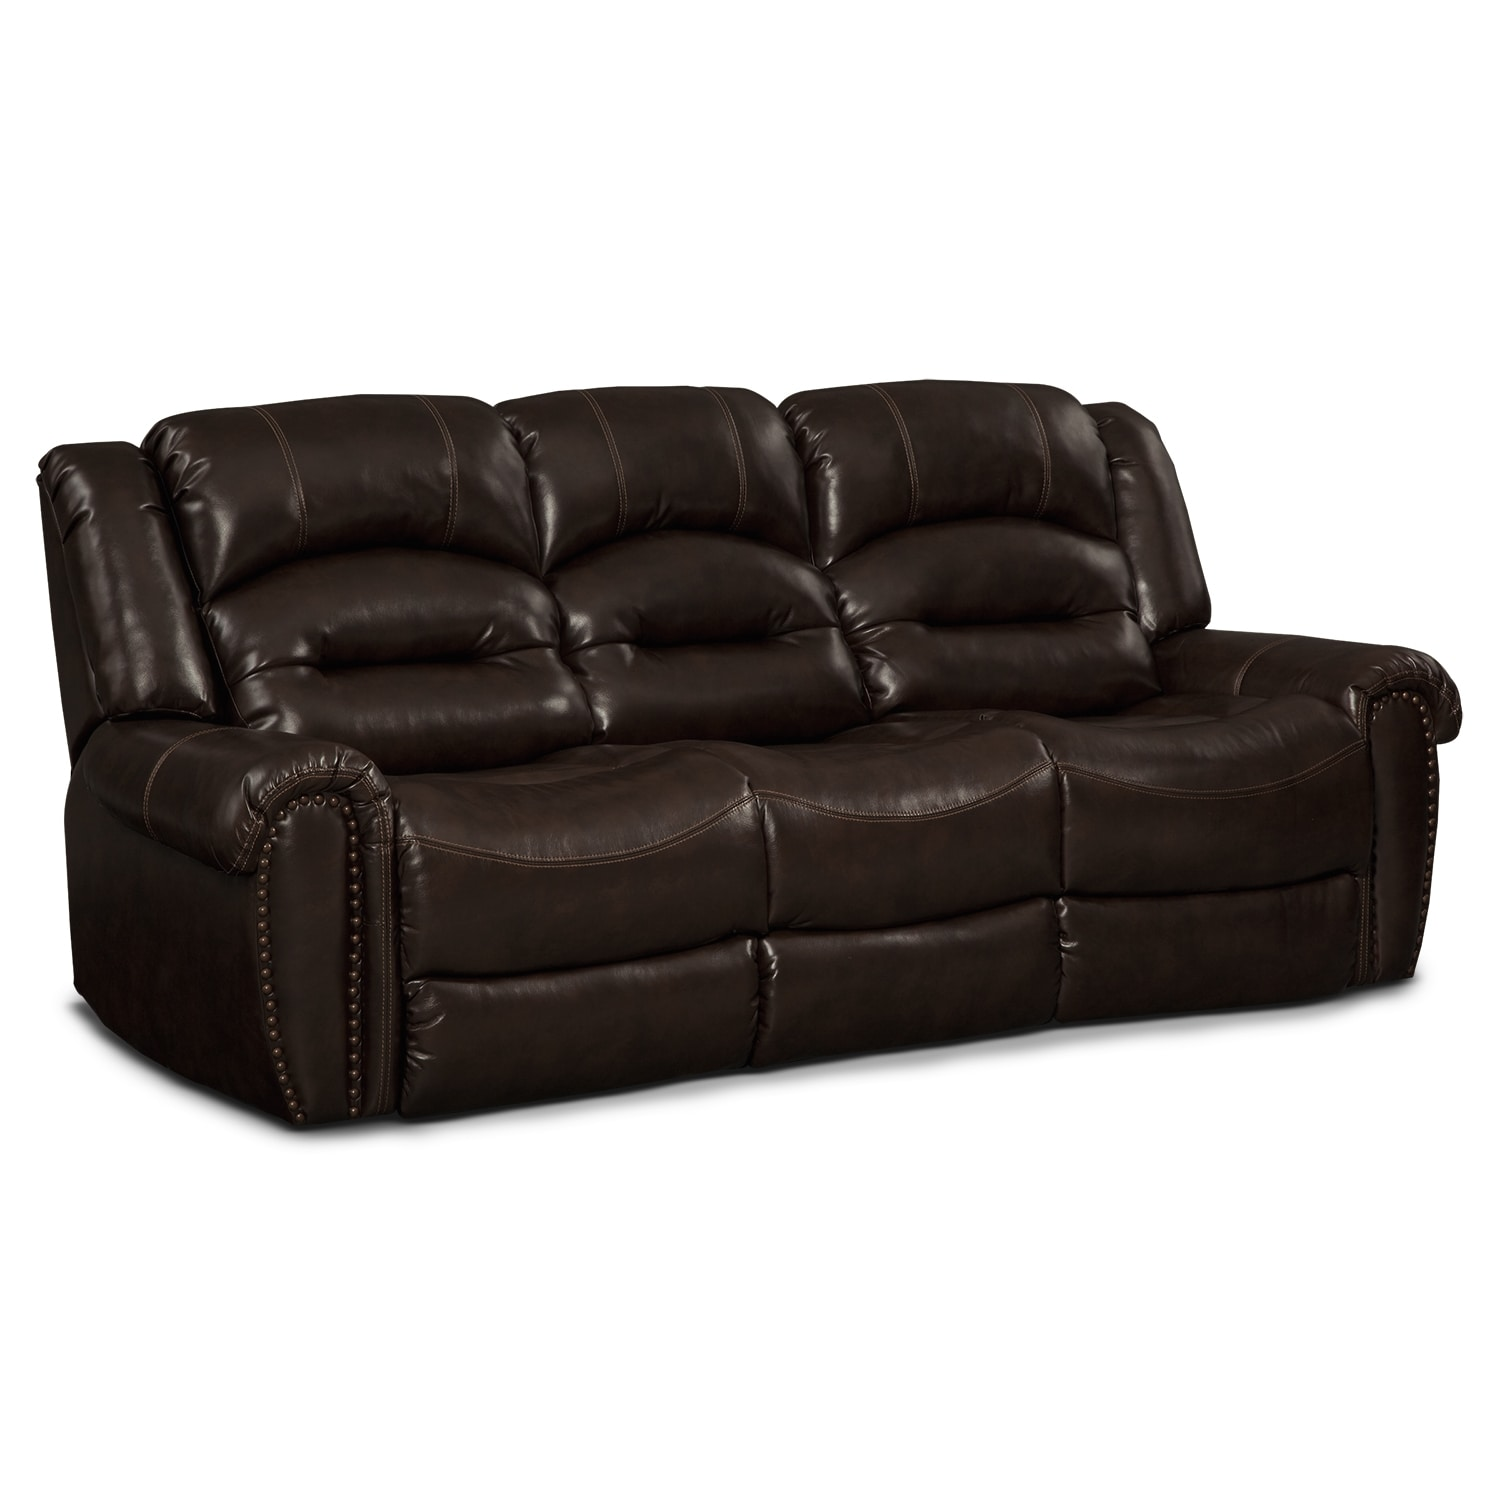 Galveston leather dual reclining sofa value city furniture Leather reclining loveseat